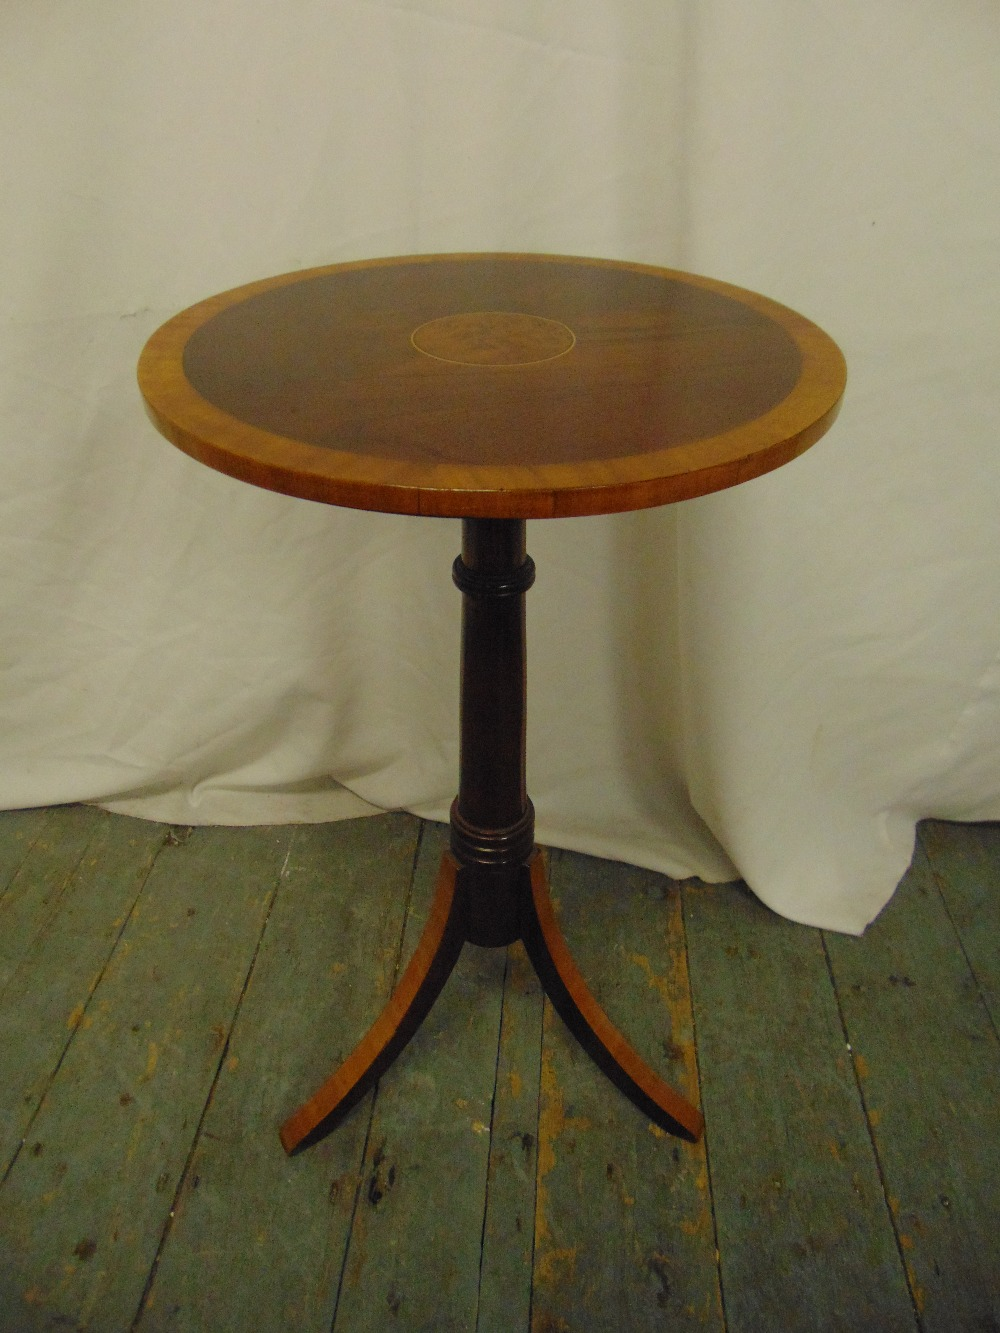 Lot 23 - An Edwardian mahogany circular side table on three outswept legs